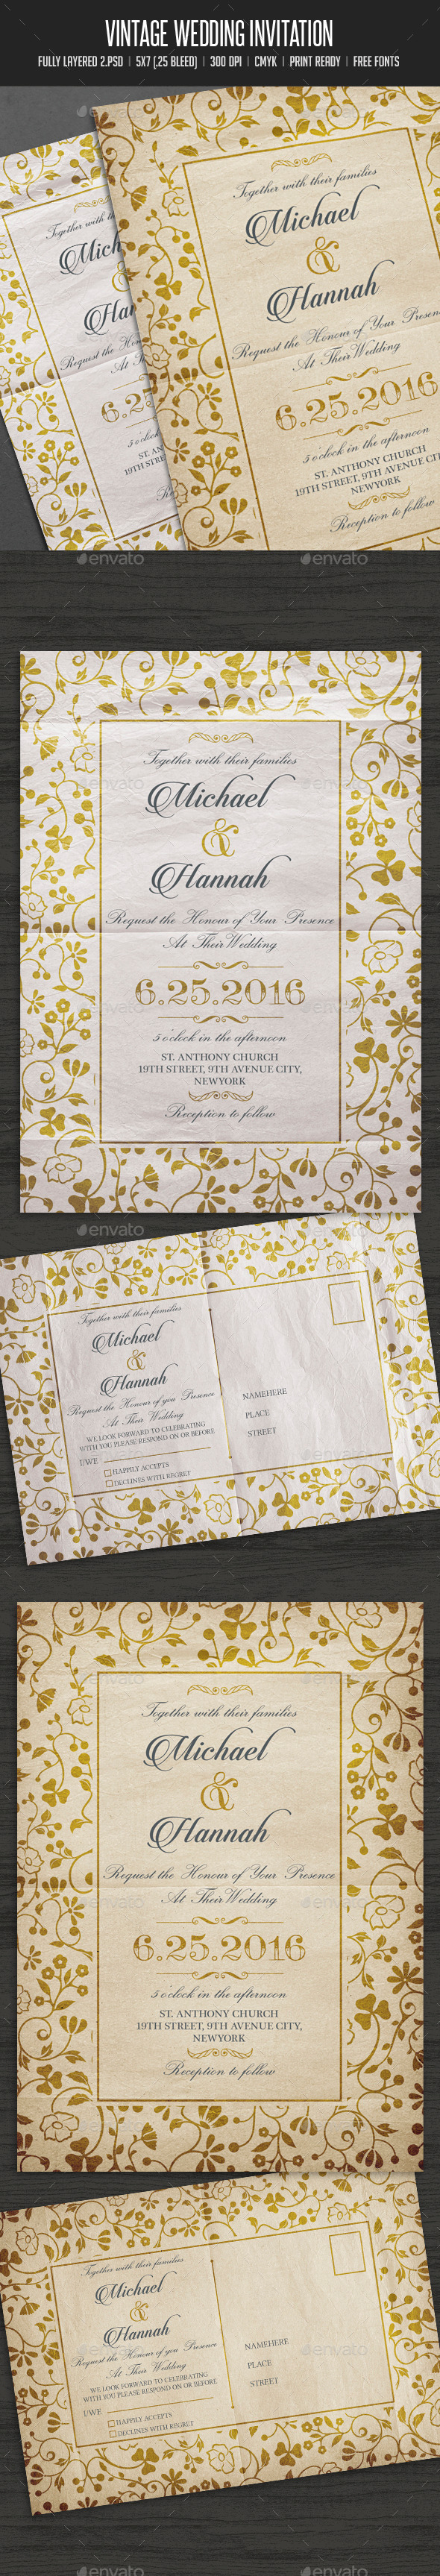 GraphicRiver Vintage Wedding Invitation Card 11902131